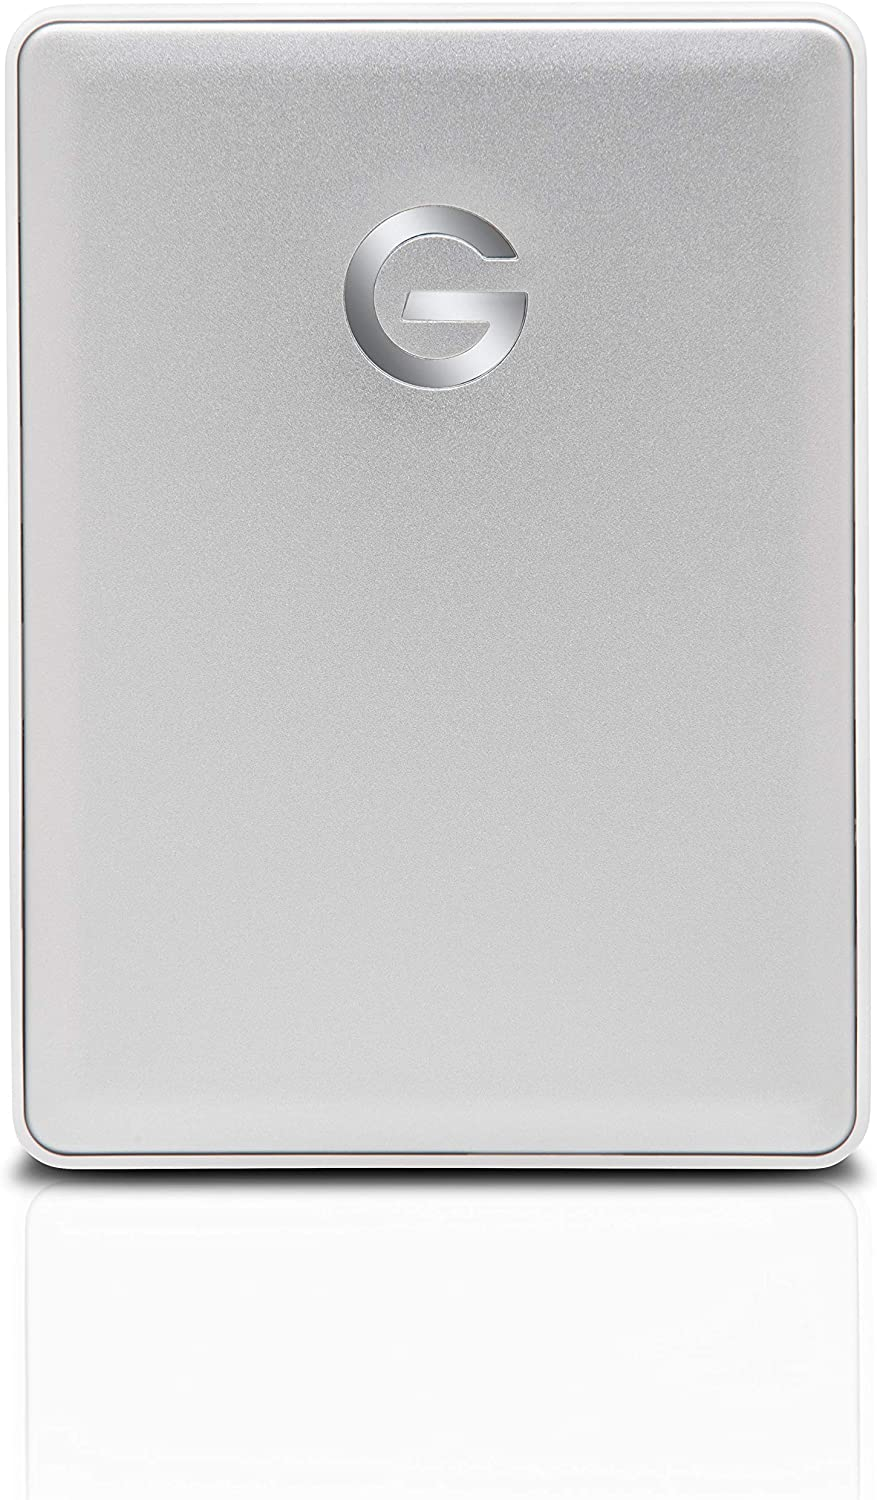 G-Technology 2TB G-DRIVE Mobile USB-C (USB 3.1 Gen 1) Portable External Hard Drive, Silver - 0G10339